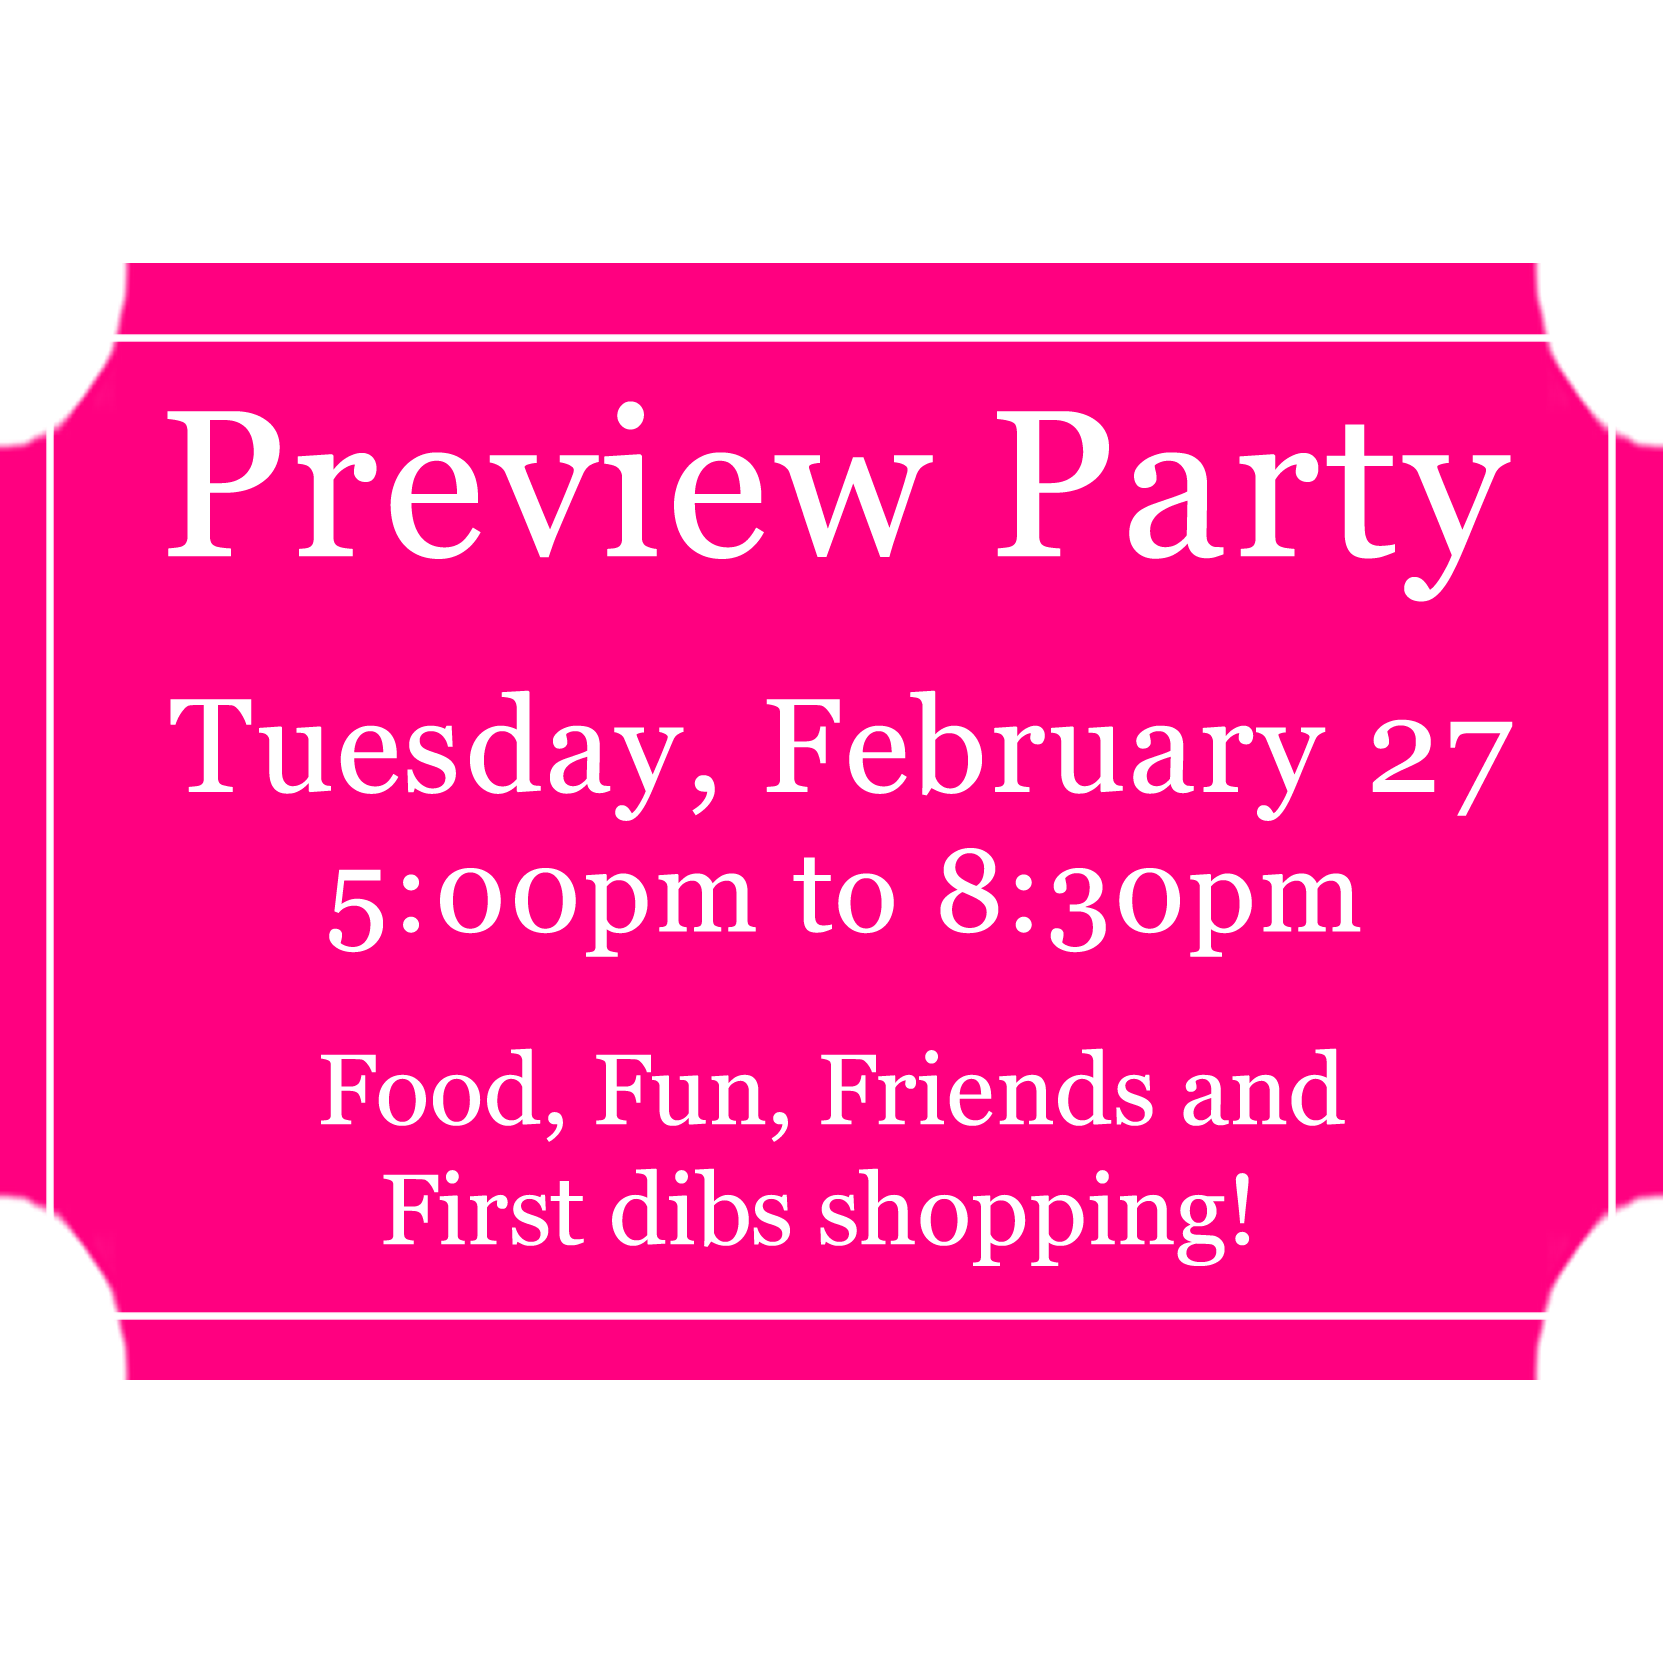 Preview Party Advance Purchase Ticket 0001